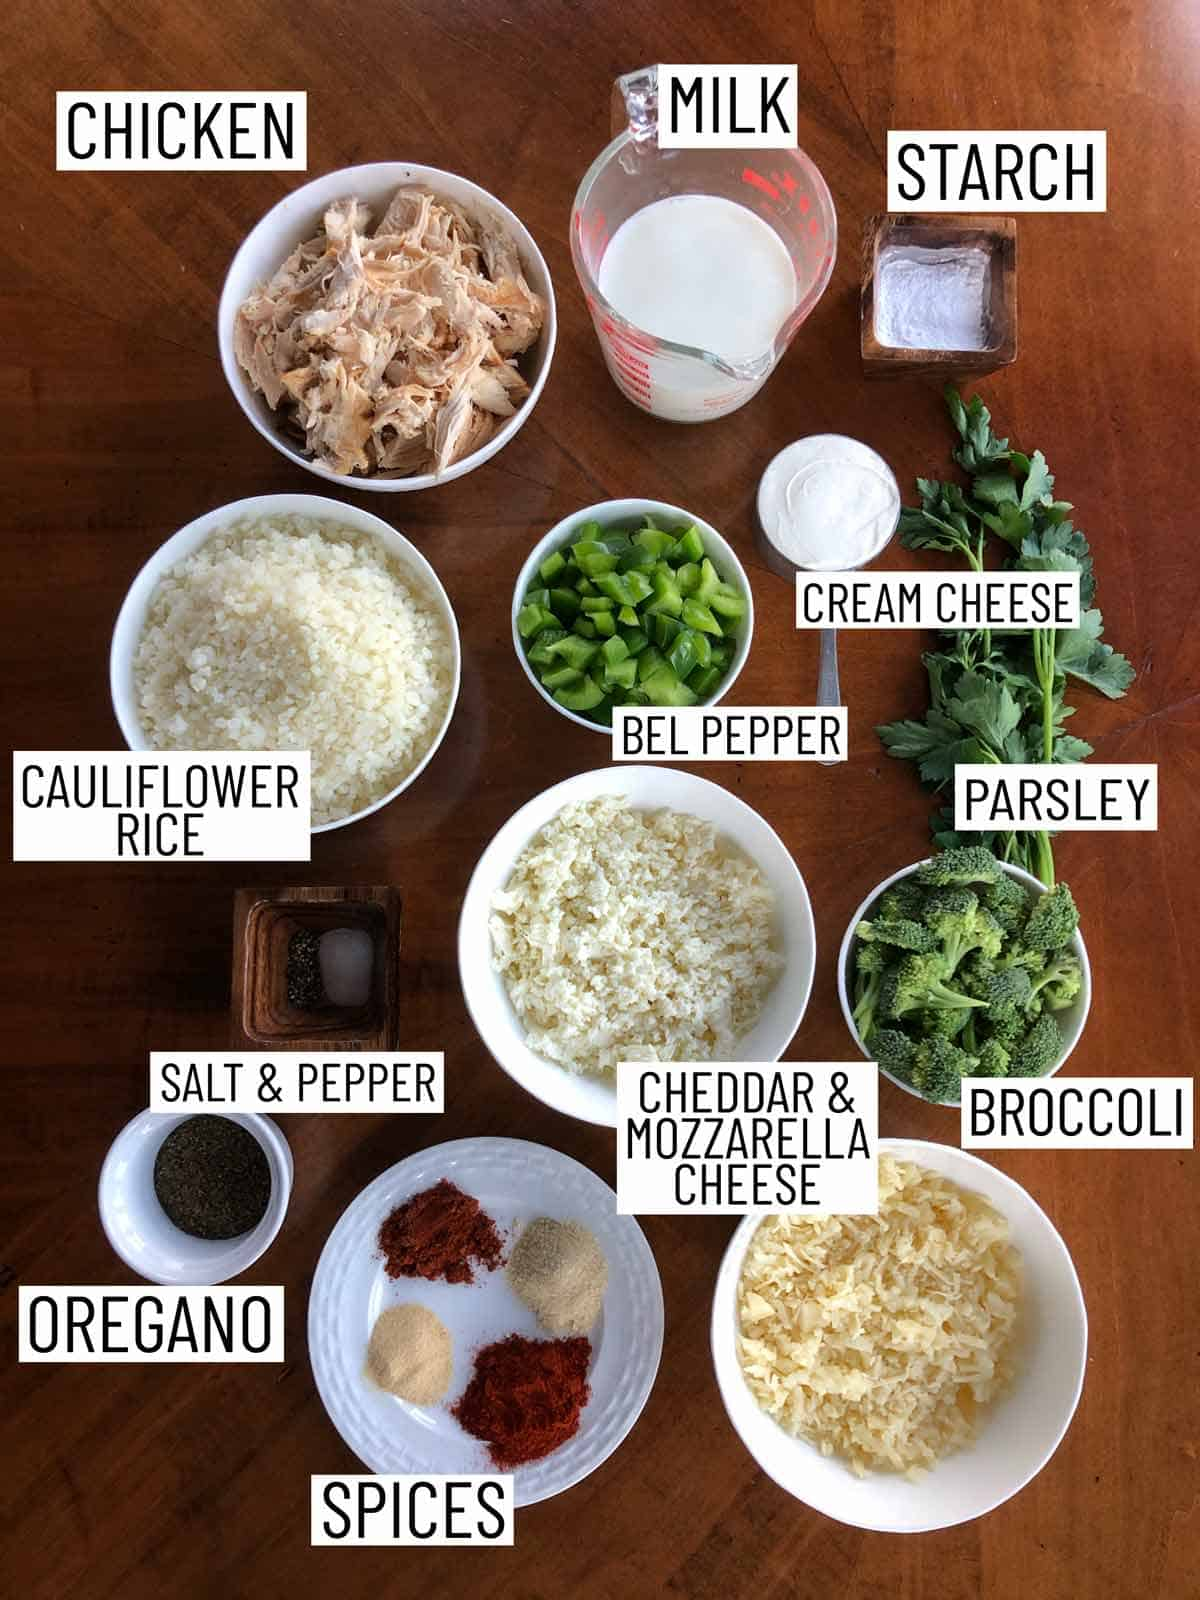 Overhead image of ingredients requires to make a cauliflower rice casserole.